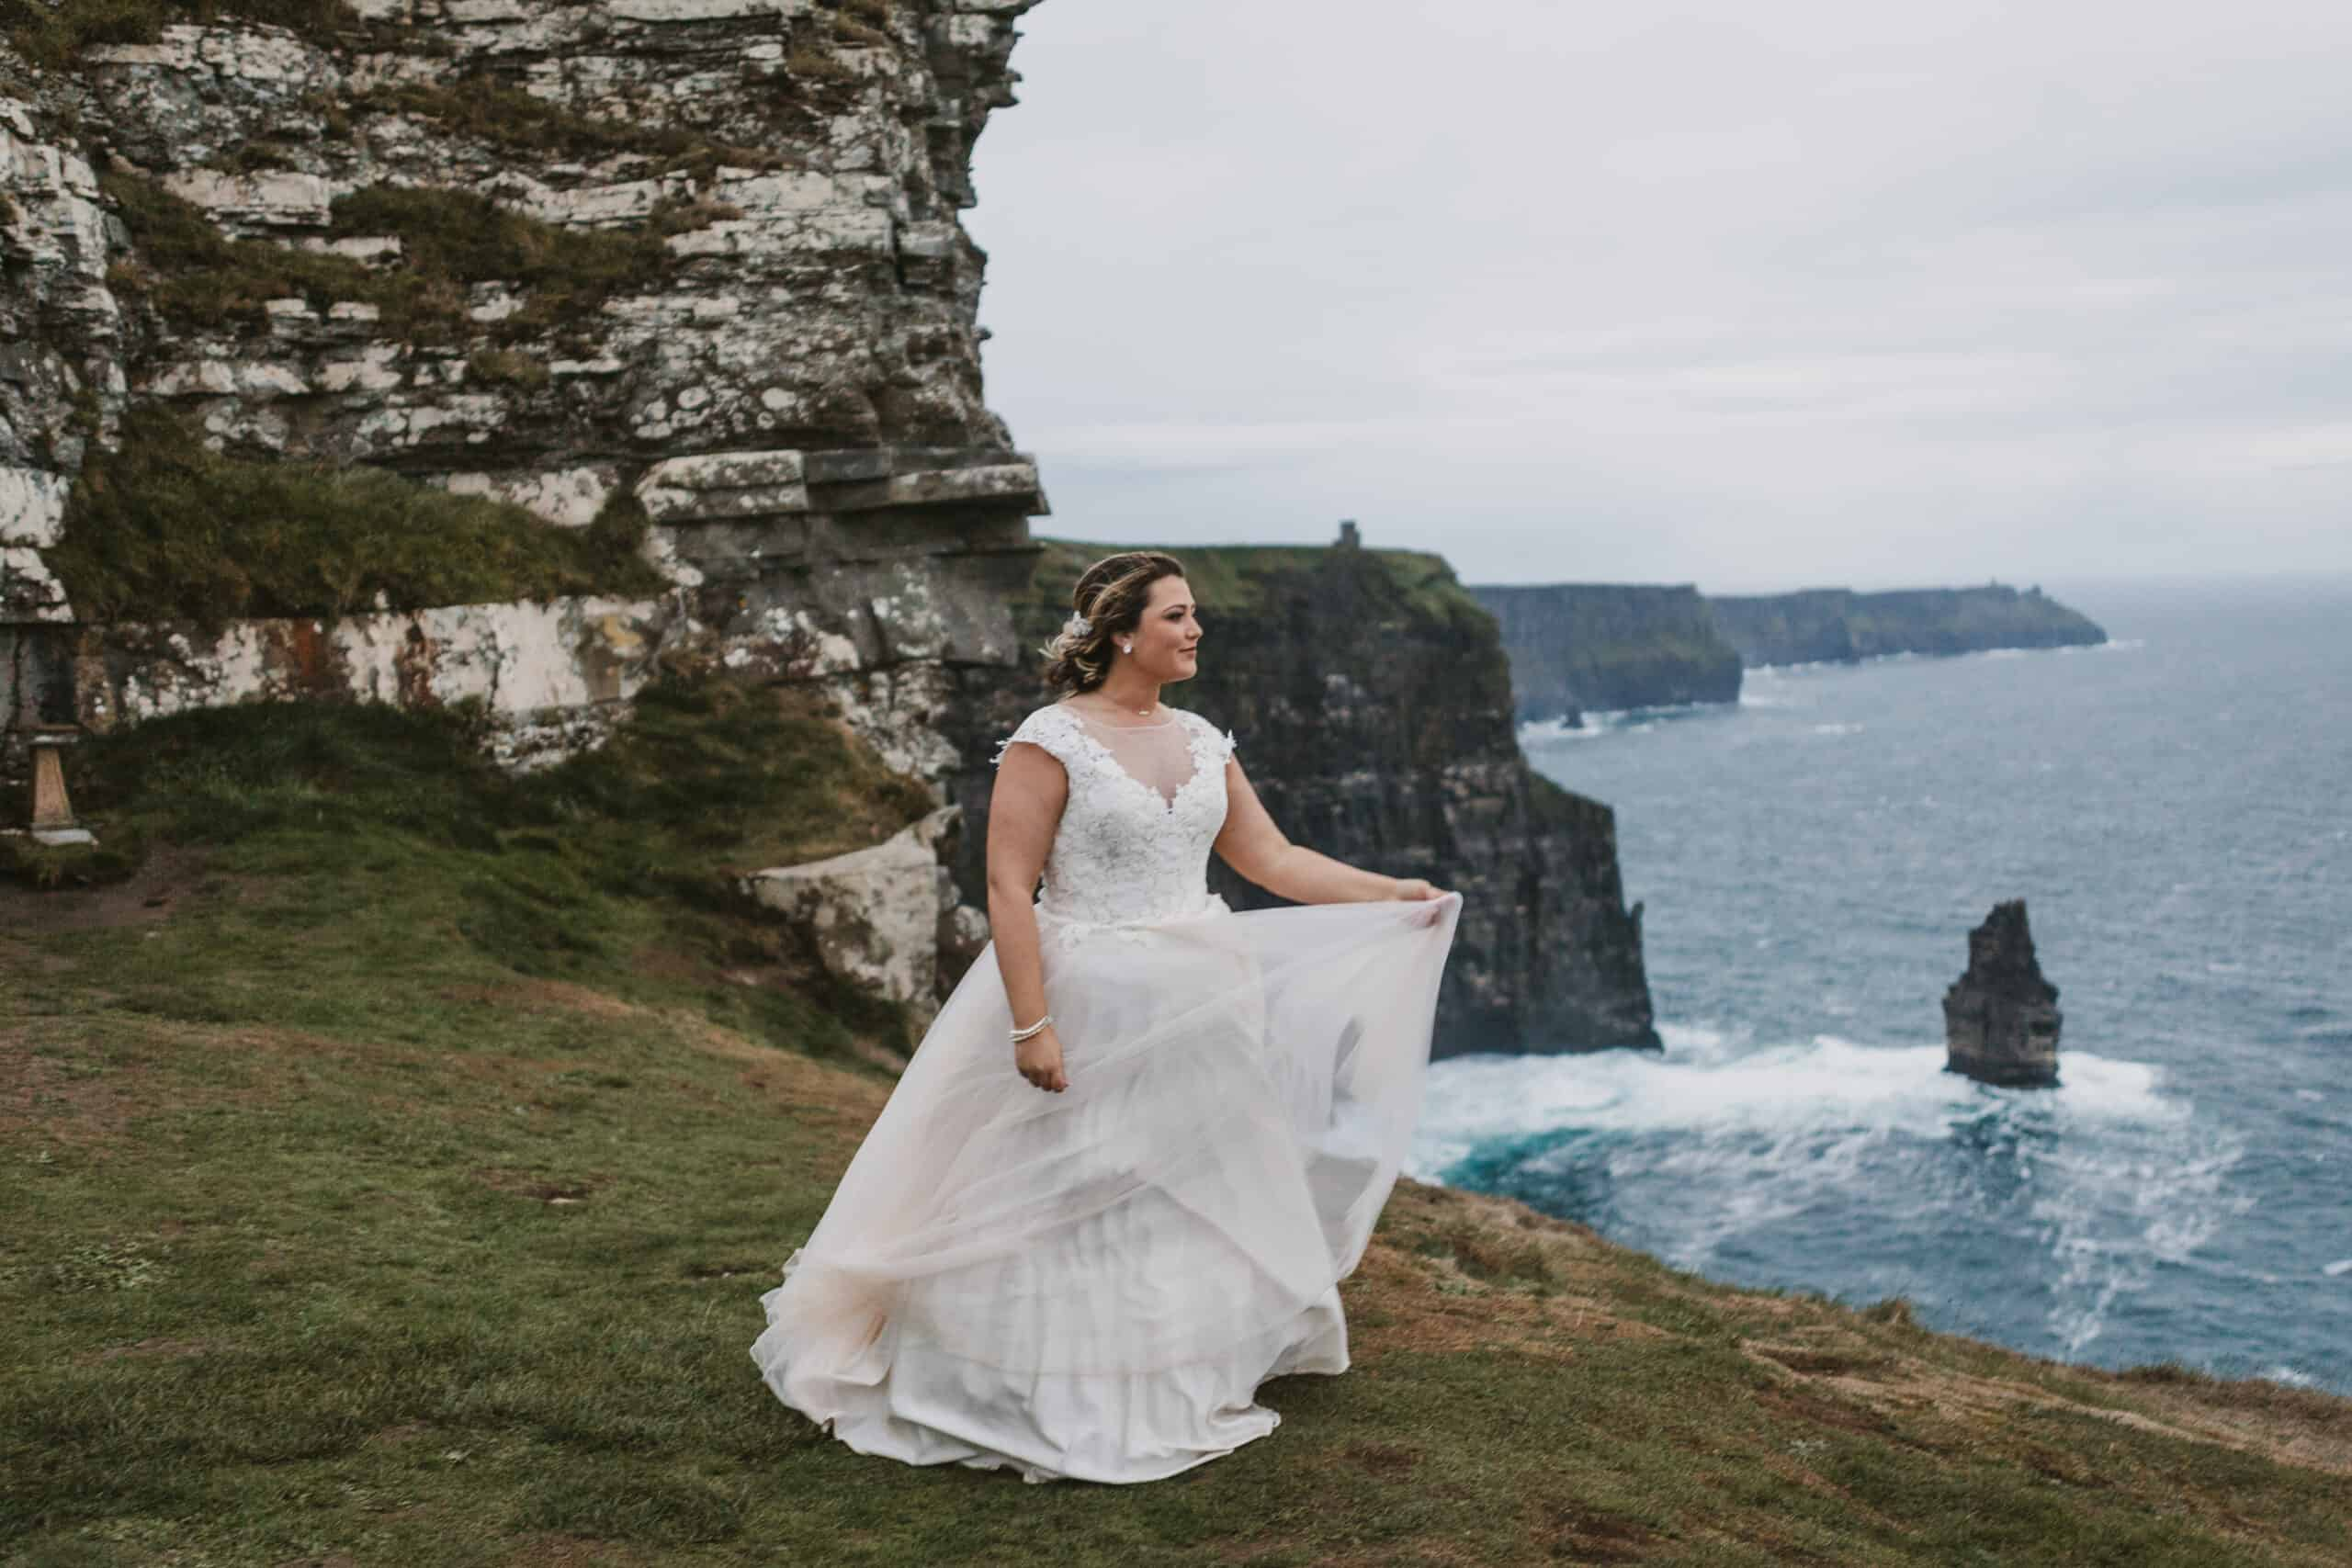 Cliffs of Moher Wedding Hags head, bride looks like a queen on the cliffs